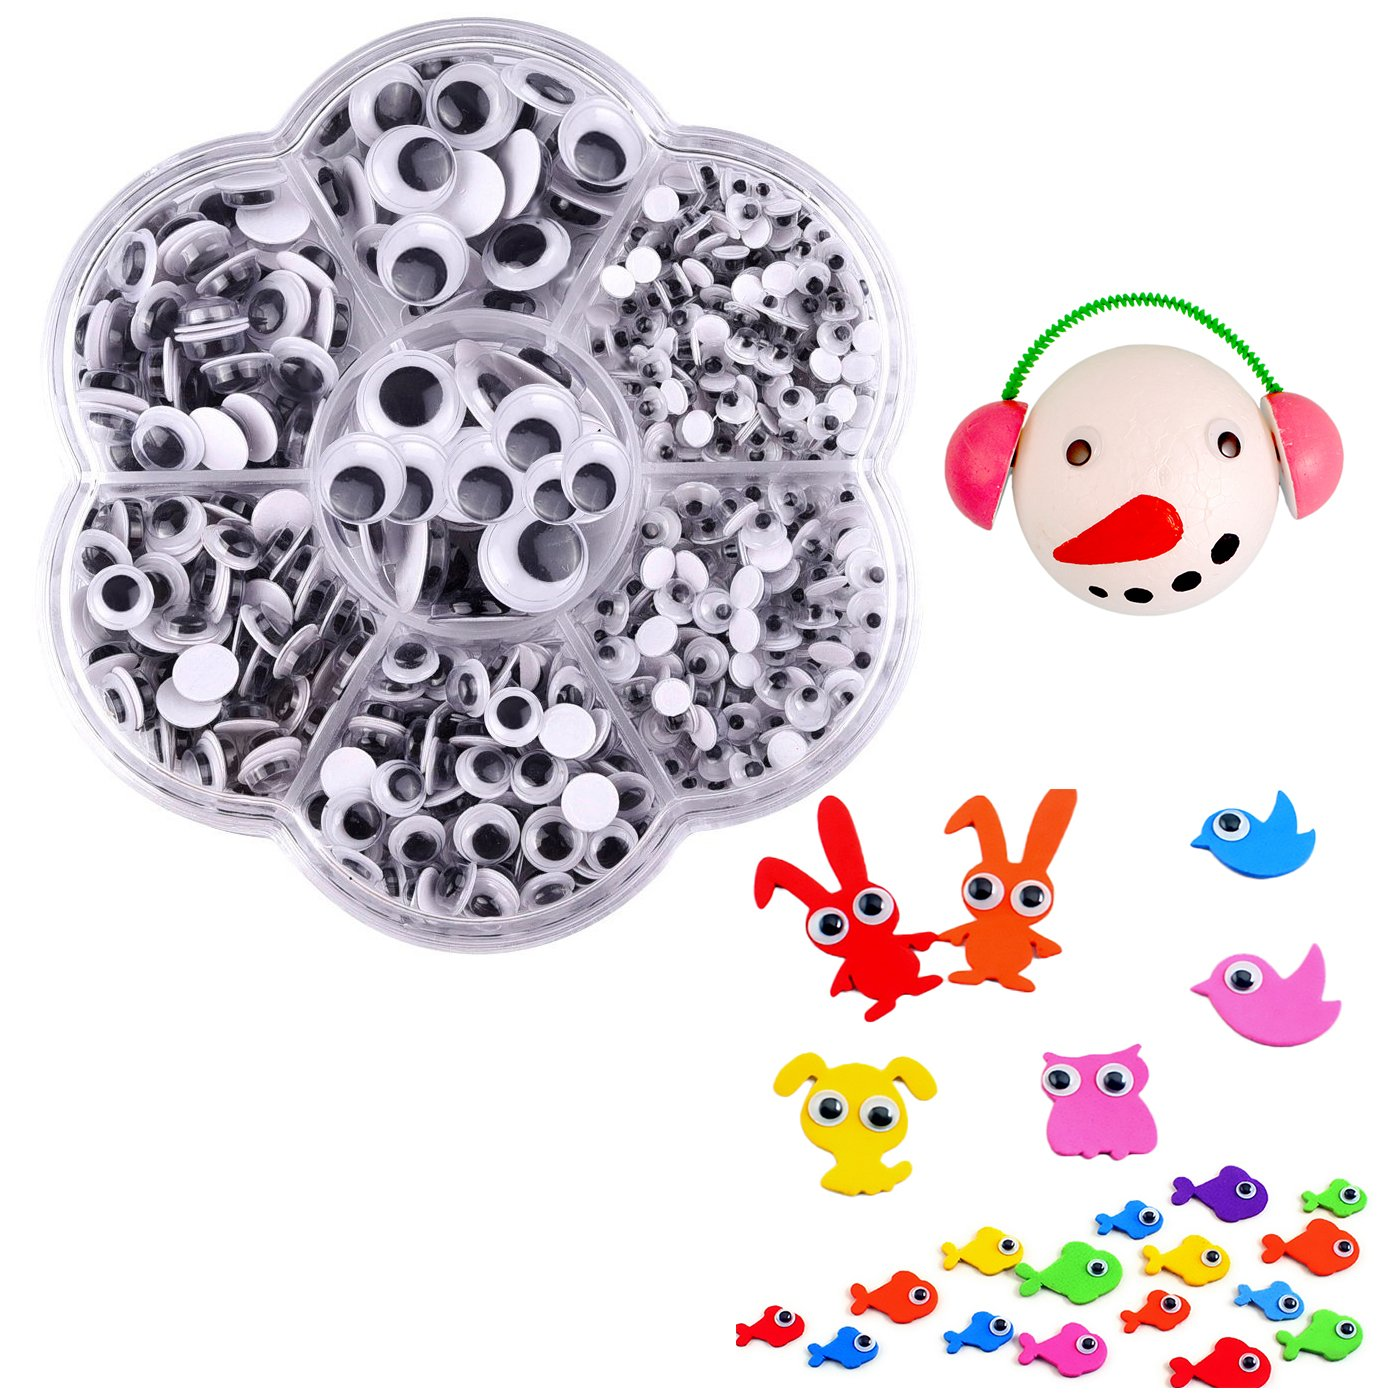 Cisixin 700 PCS DIY Plastic Self Adhesive Fake Round Wiggle Googly Doll Toy Eyes Scrapbooking Crafts Eye Accessories with Storage Box